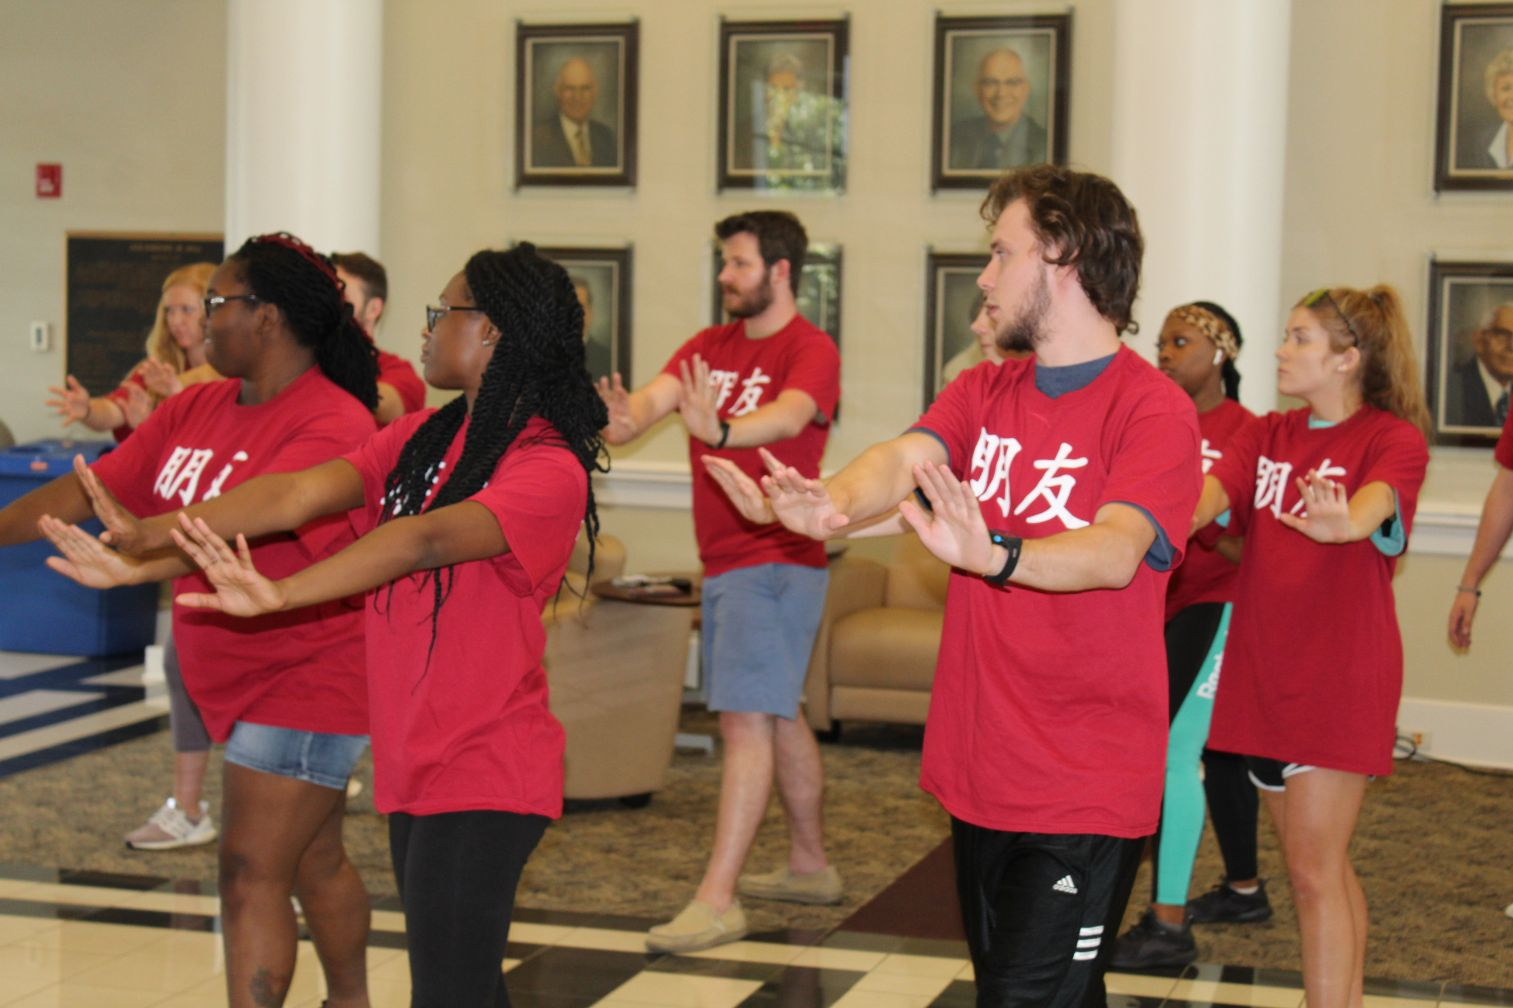 The students move into another Tai Chi sequence with their arms outstretched in front of them and their legs spread.